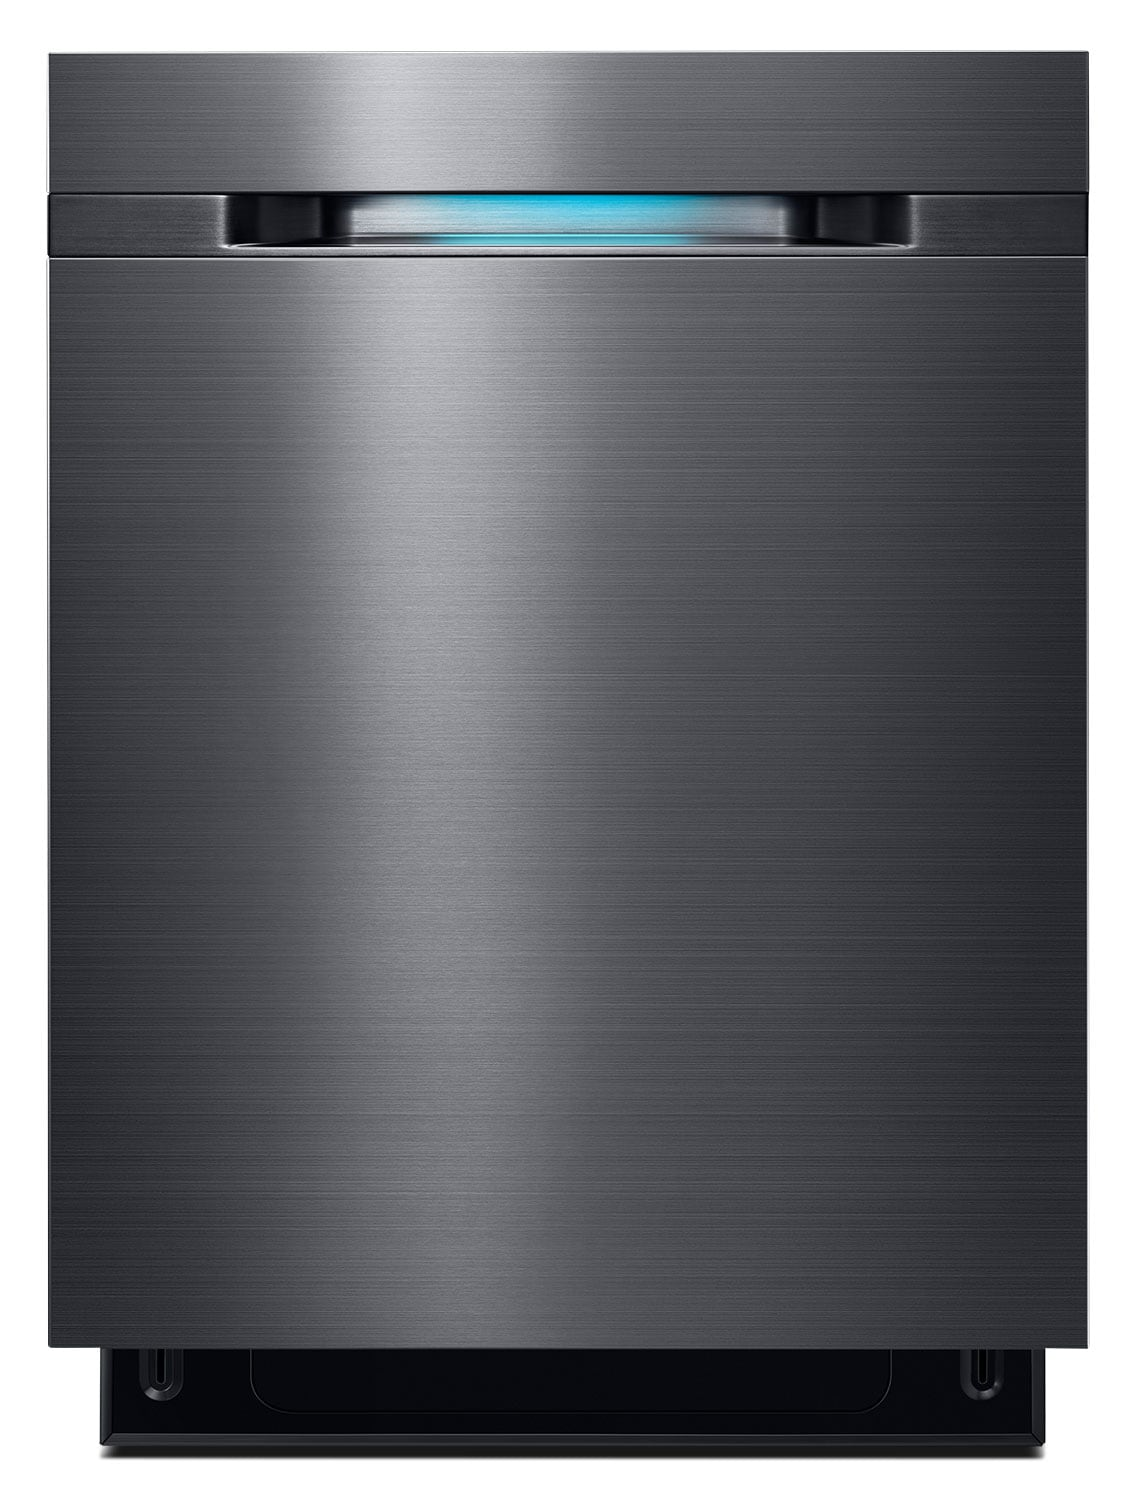 "Clean-Up - Samsung Black Stainless Steel 24"" Dishwasher - DW80J7550UG/AC"